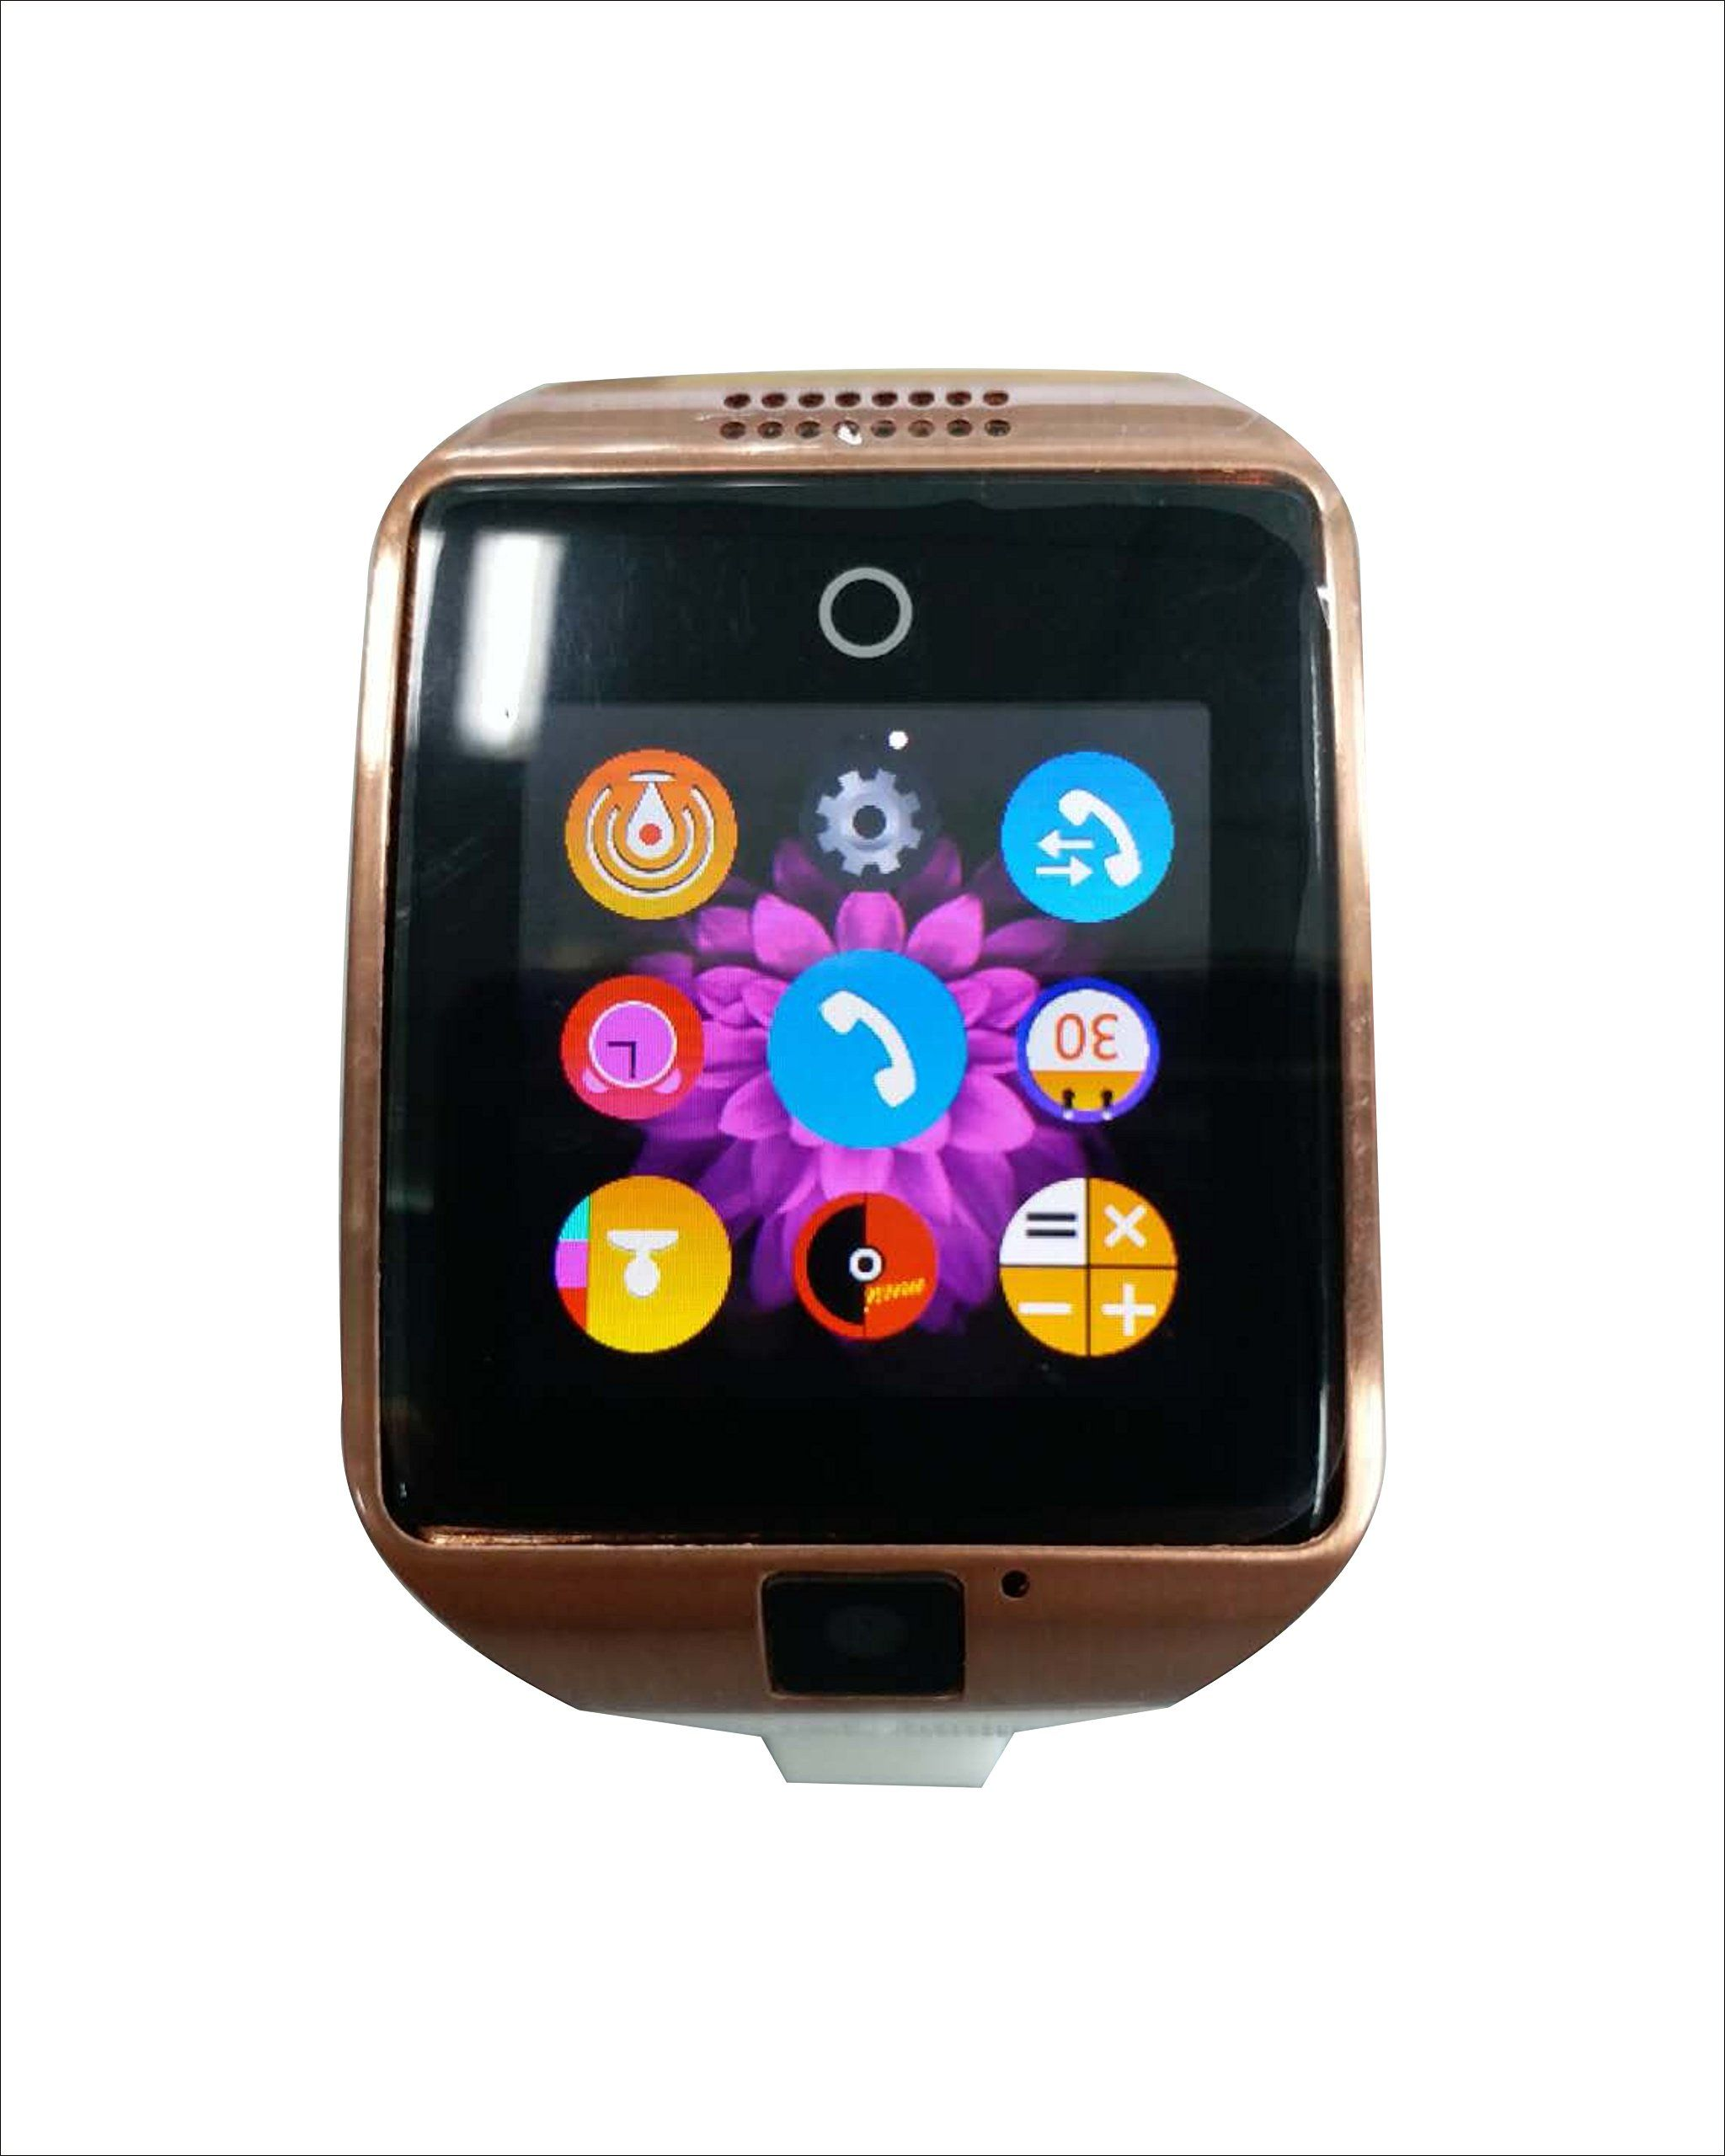 core phones mobile smartwatches android best smart watches wifi independent agent selling phone from product the all bluetooth watch dual